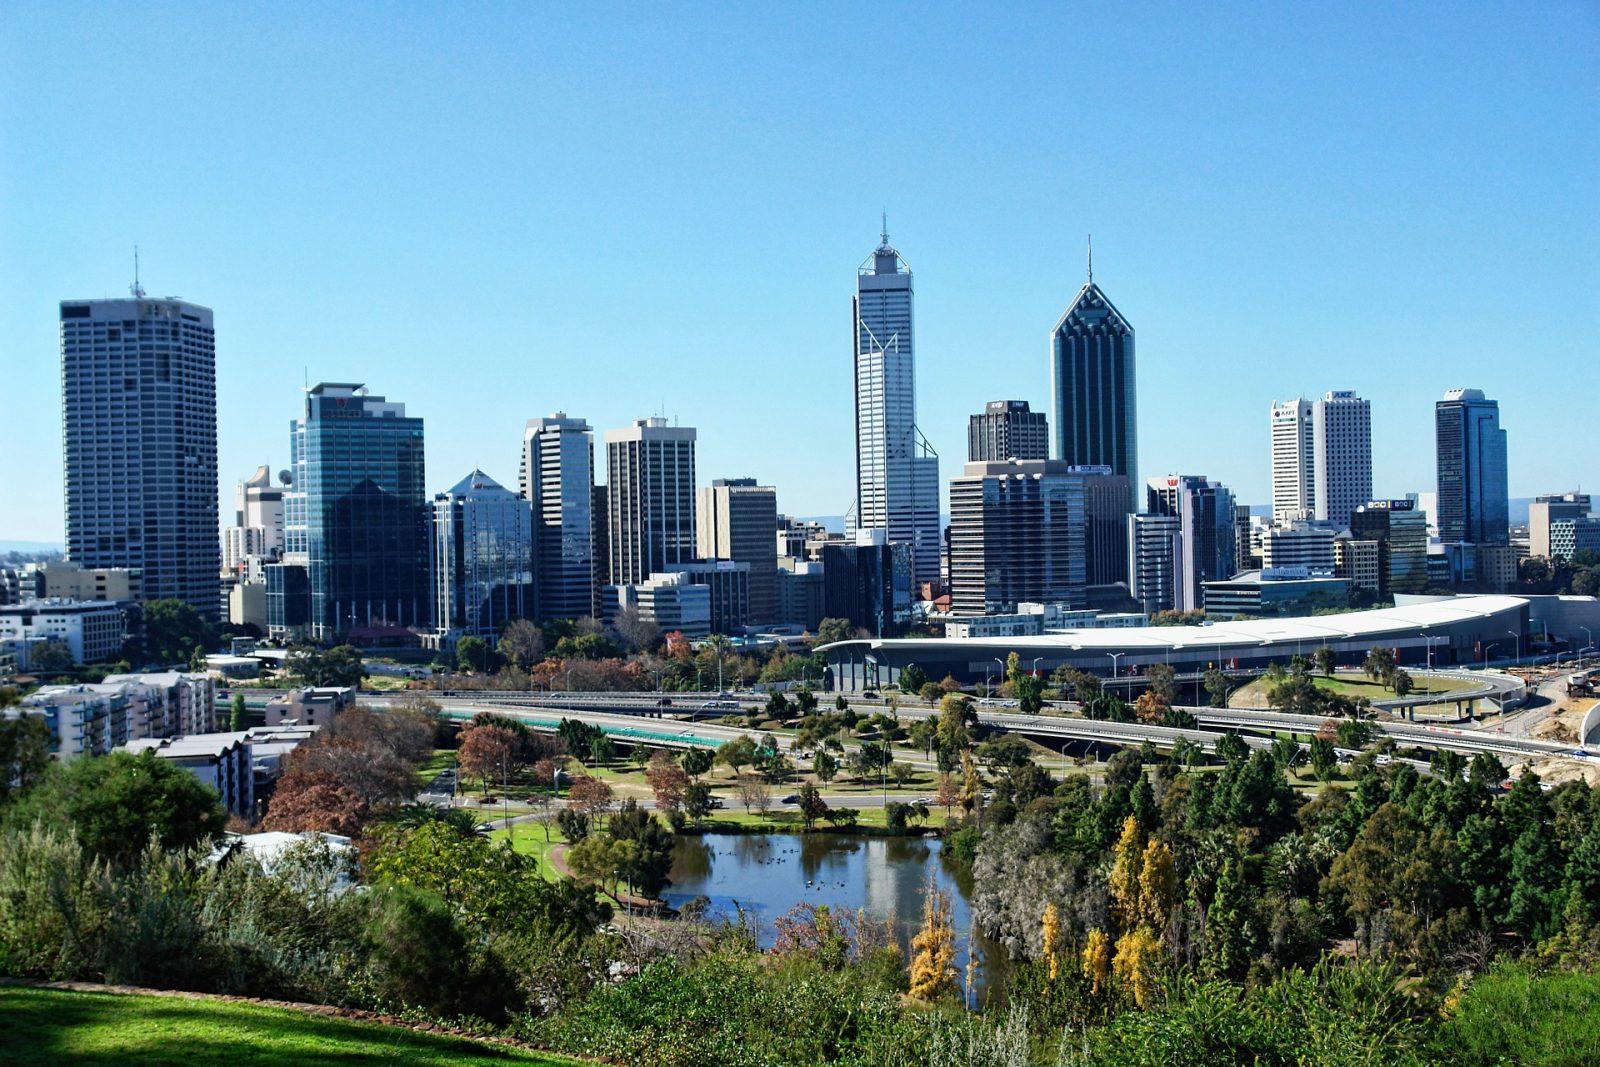 Western Australia itinerary: Perth Skyline from Kings Park